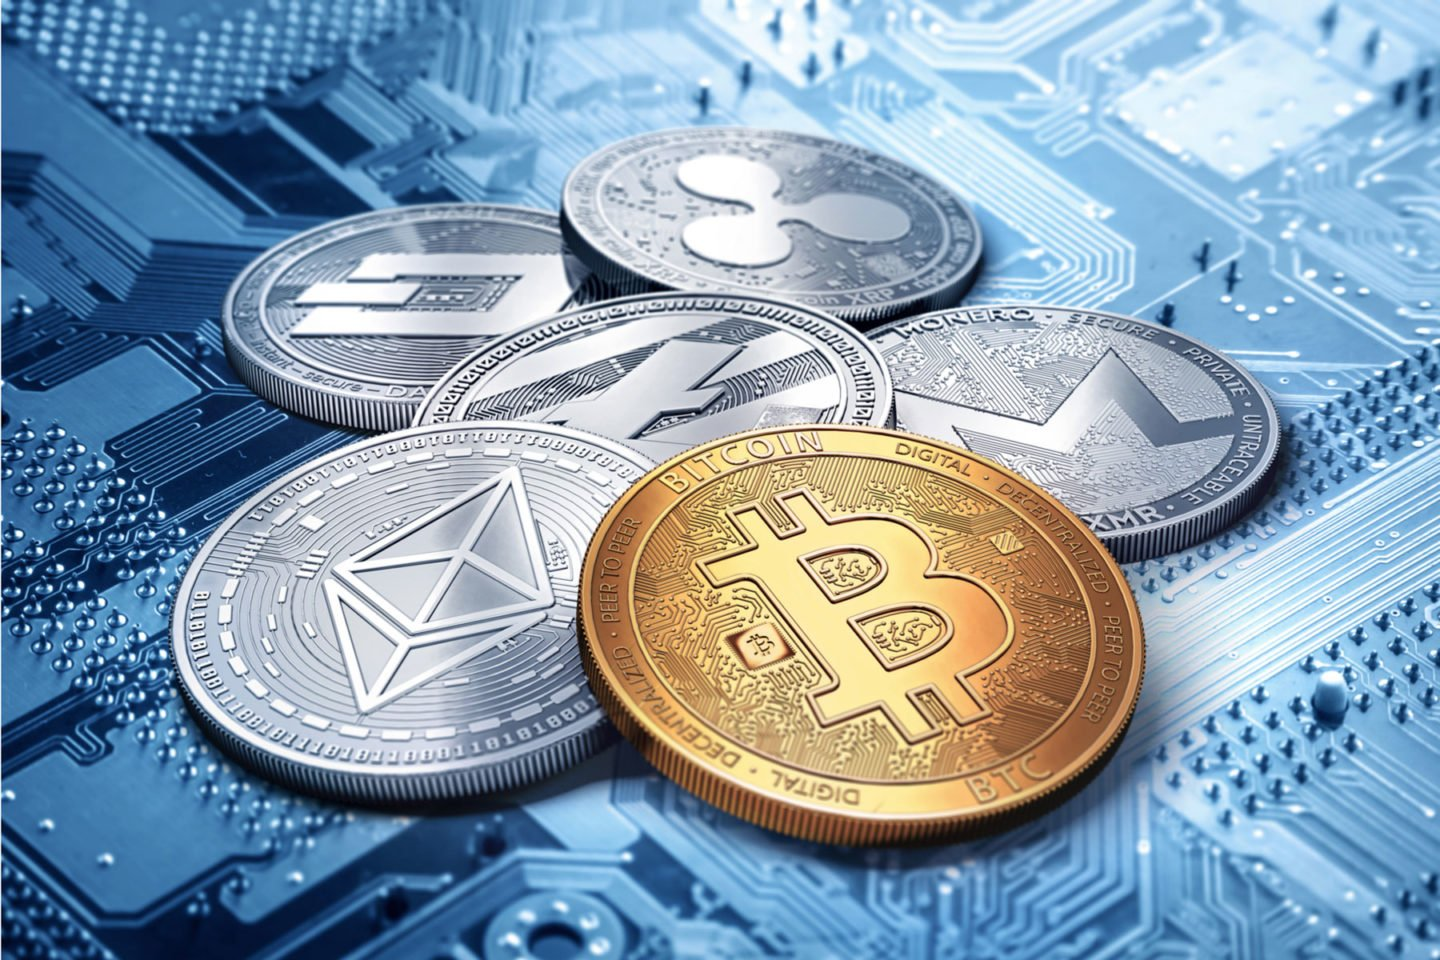 What can you buy with cryptocurrency?